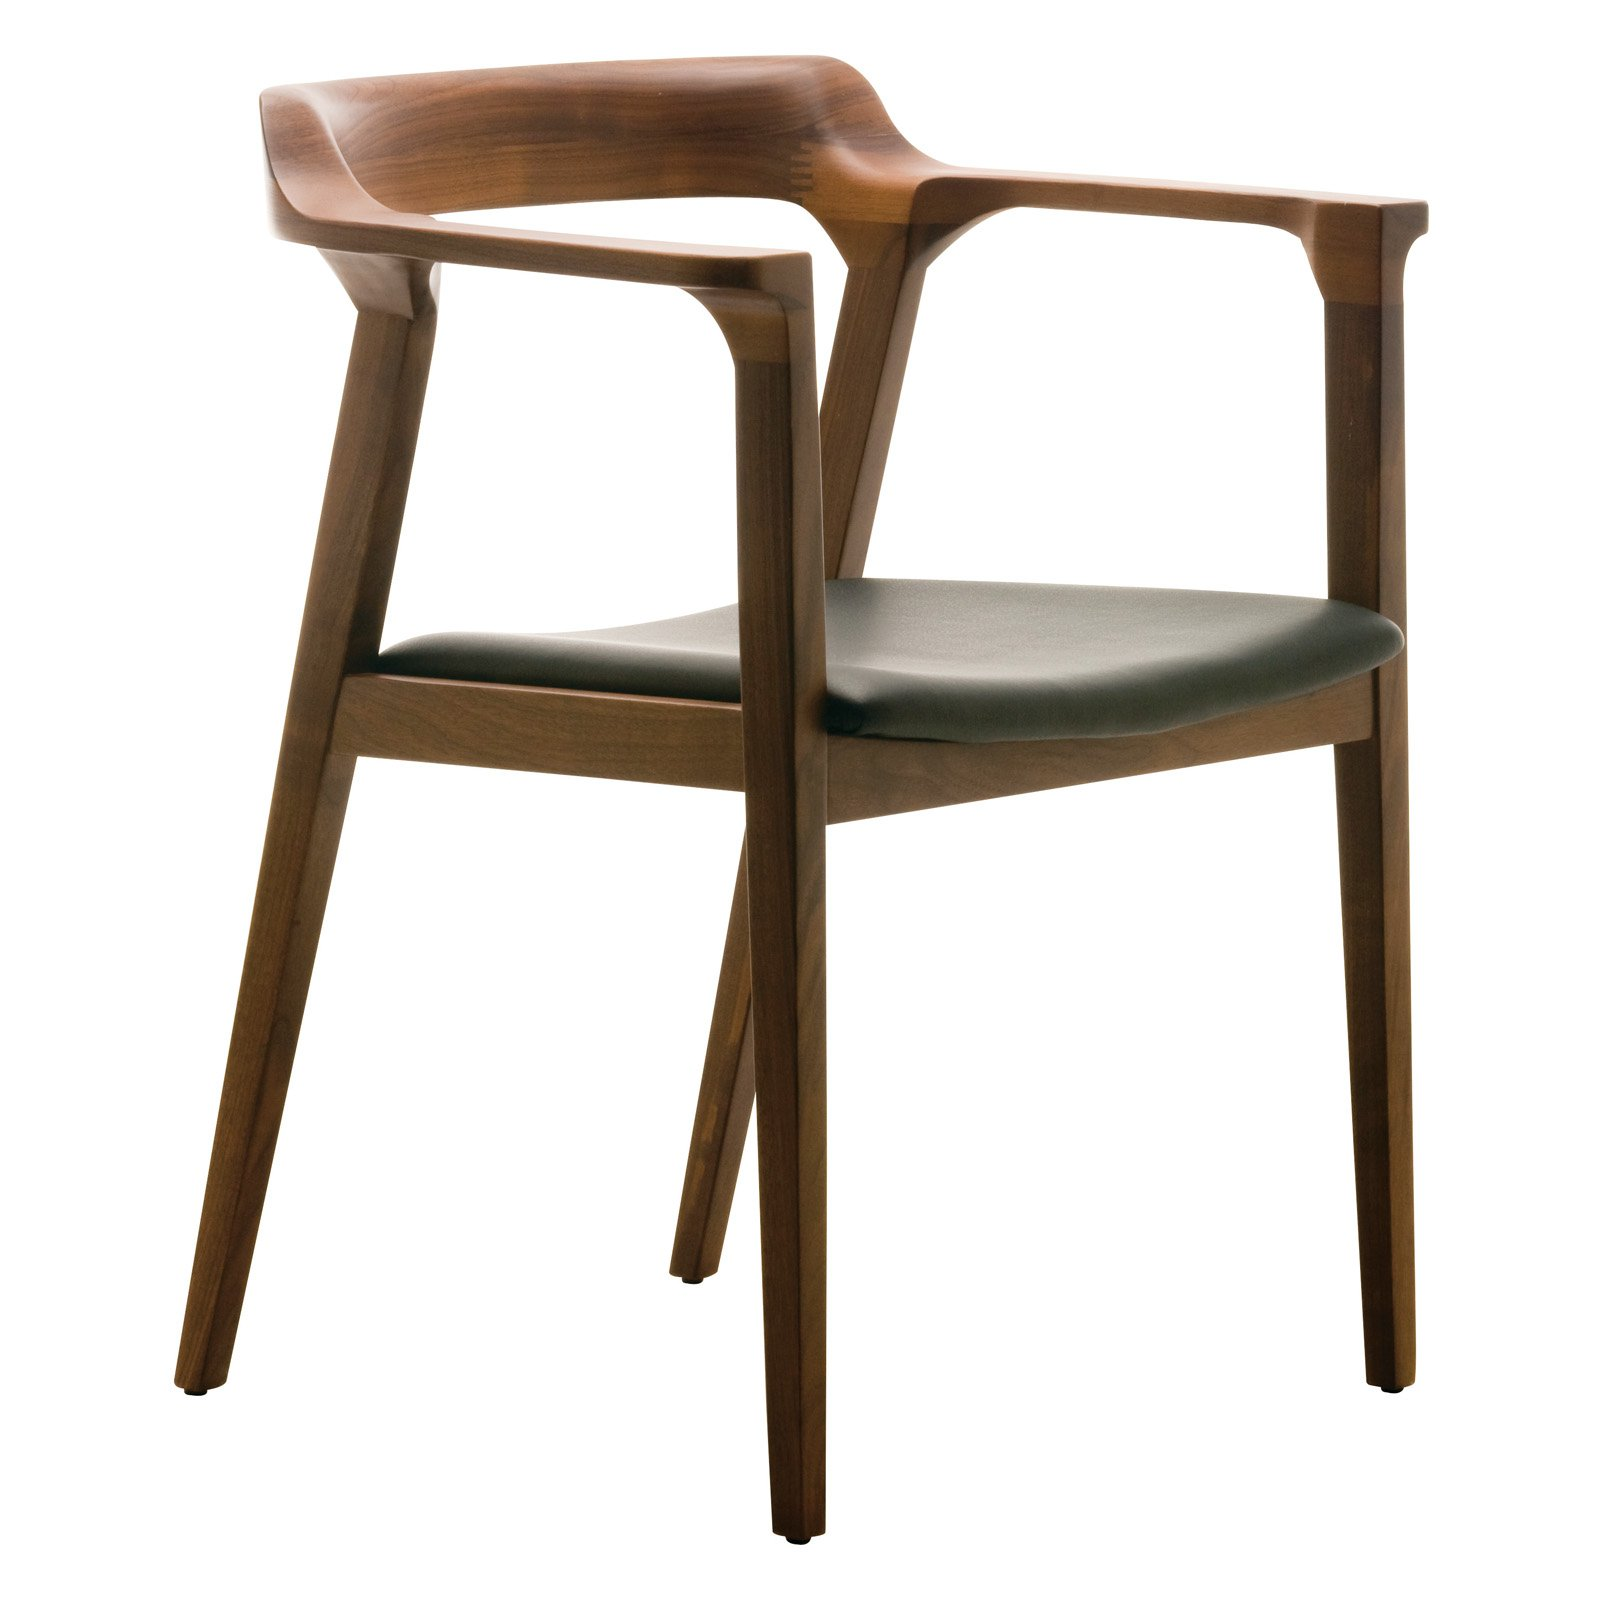 Caitlan Dining Chair with Tan Walnut Finish by Nuevo Living